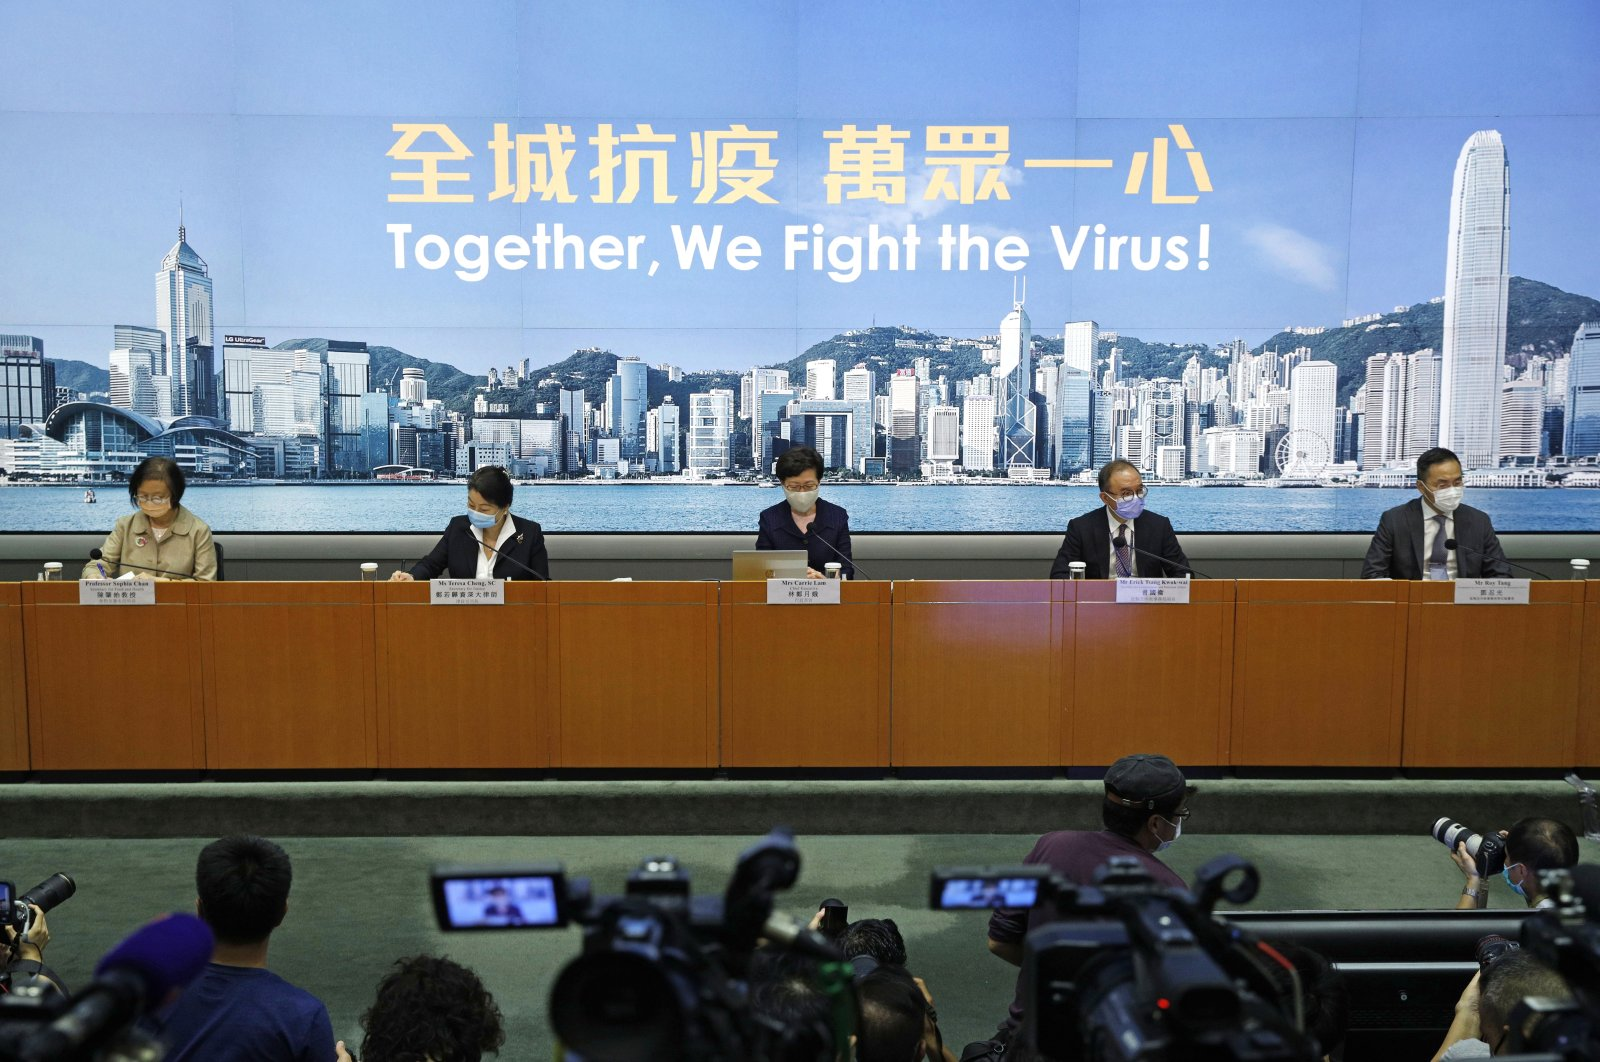 Hong Kong Chief Executive Carrie Lam (C) announces the postponement of legislative elections scheduled for Sept. 6, citing a worsening coronavirus outbreak, during a press conference in Hong Kong, July 31, 2020. (AP Photo)